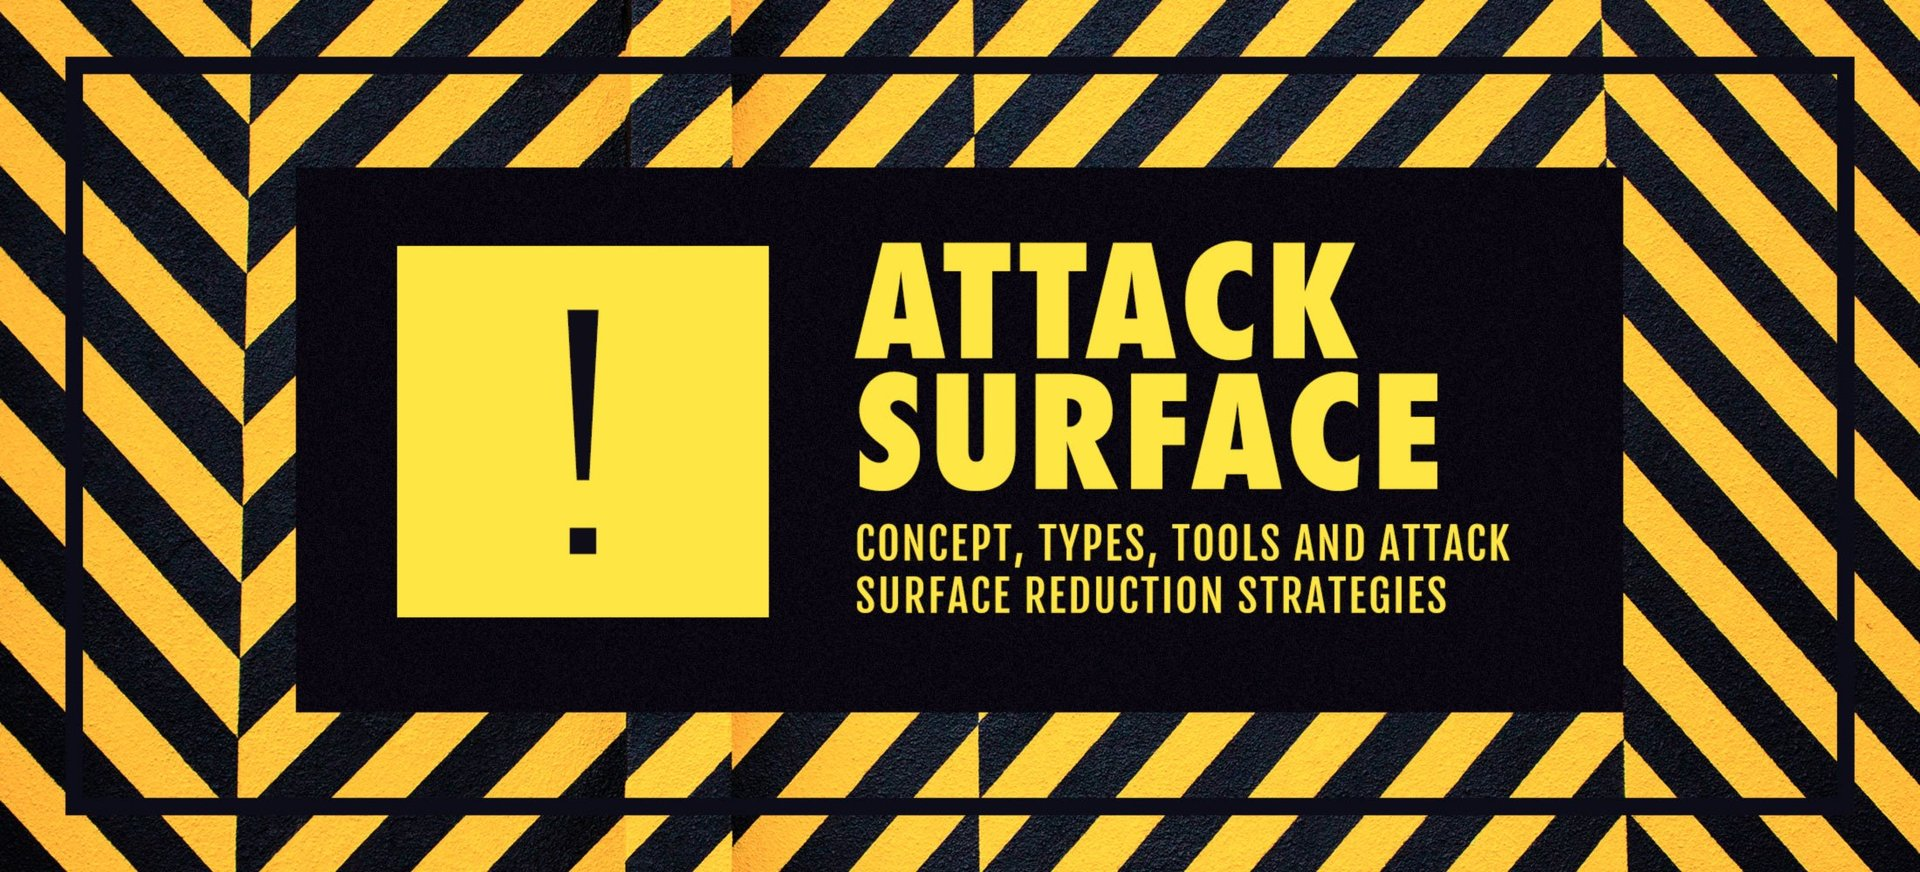 Attack Surface: Concept, Types, Tools and Attack Surface